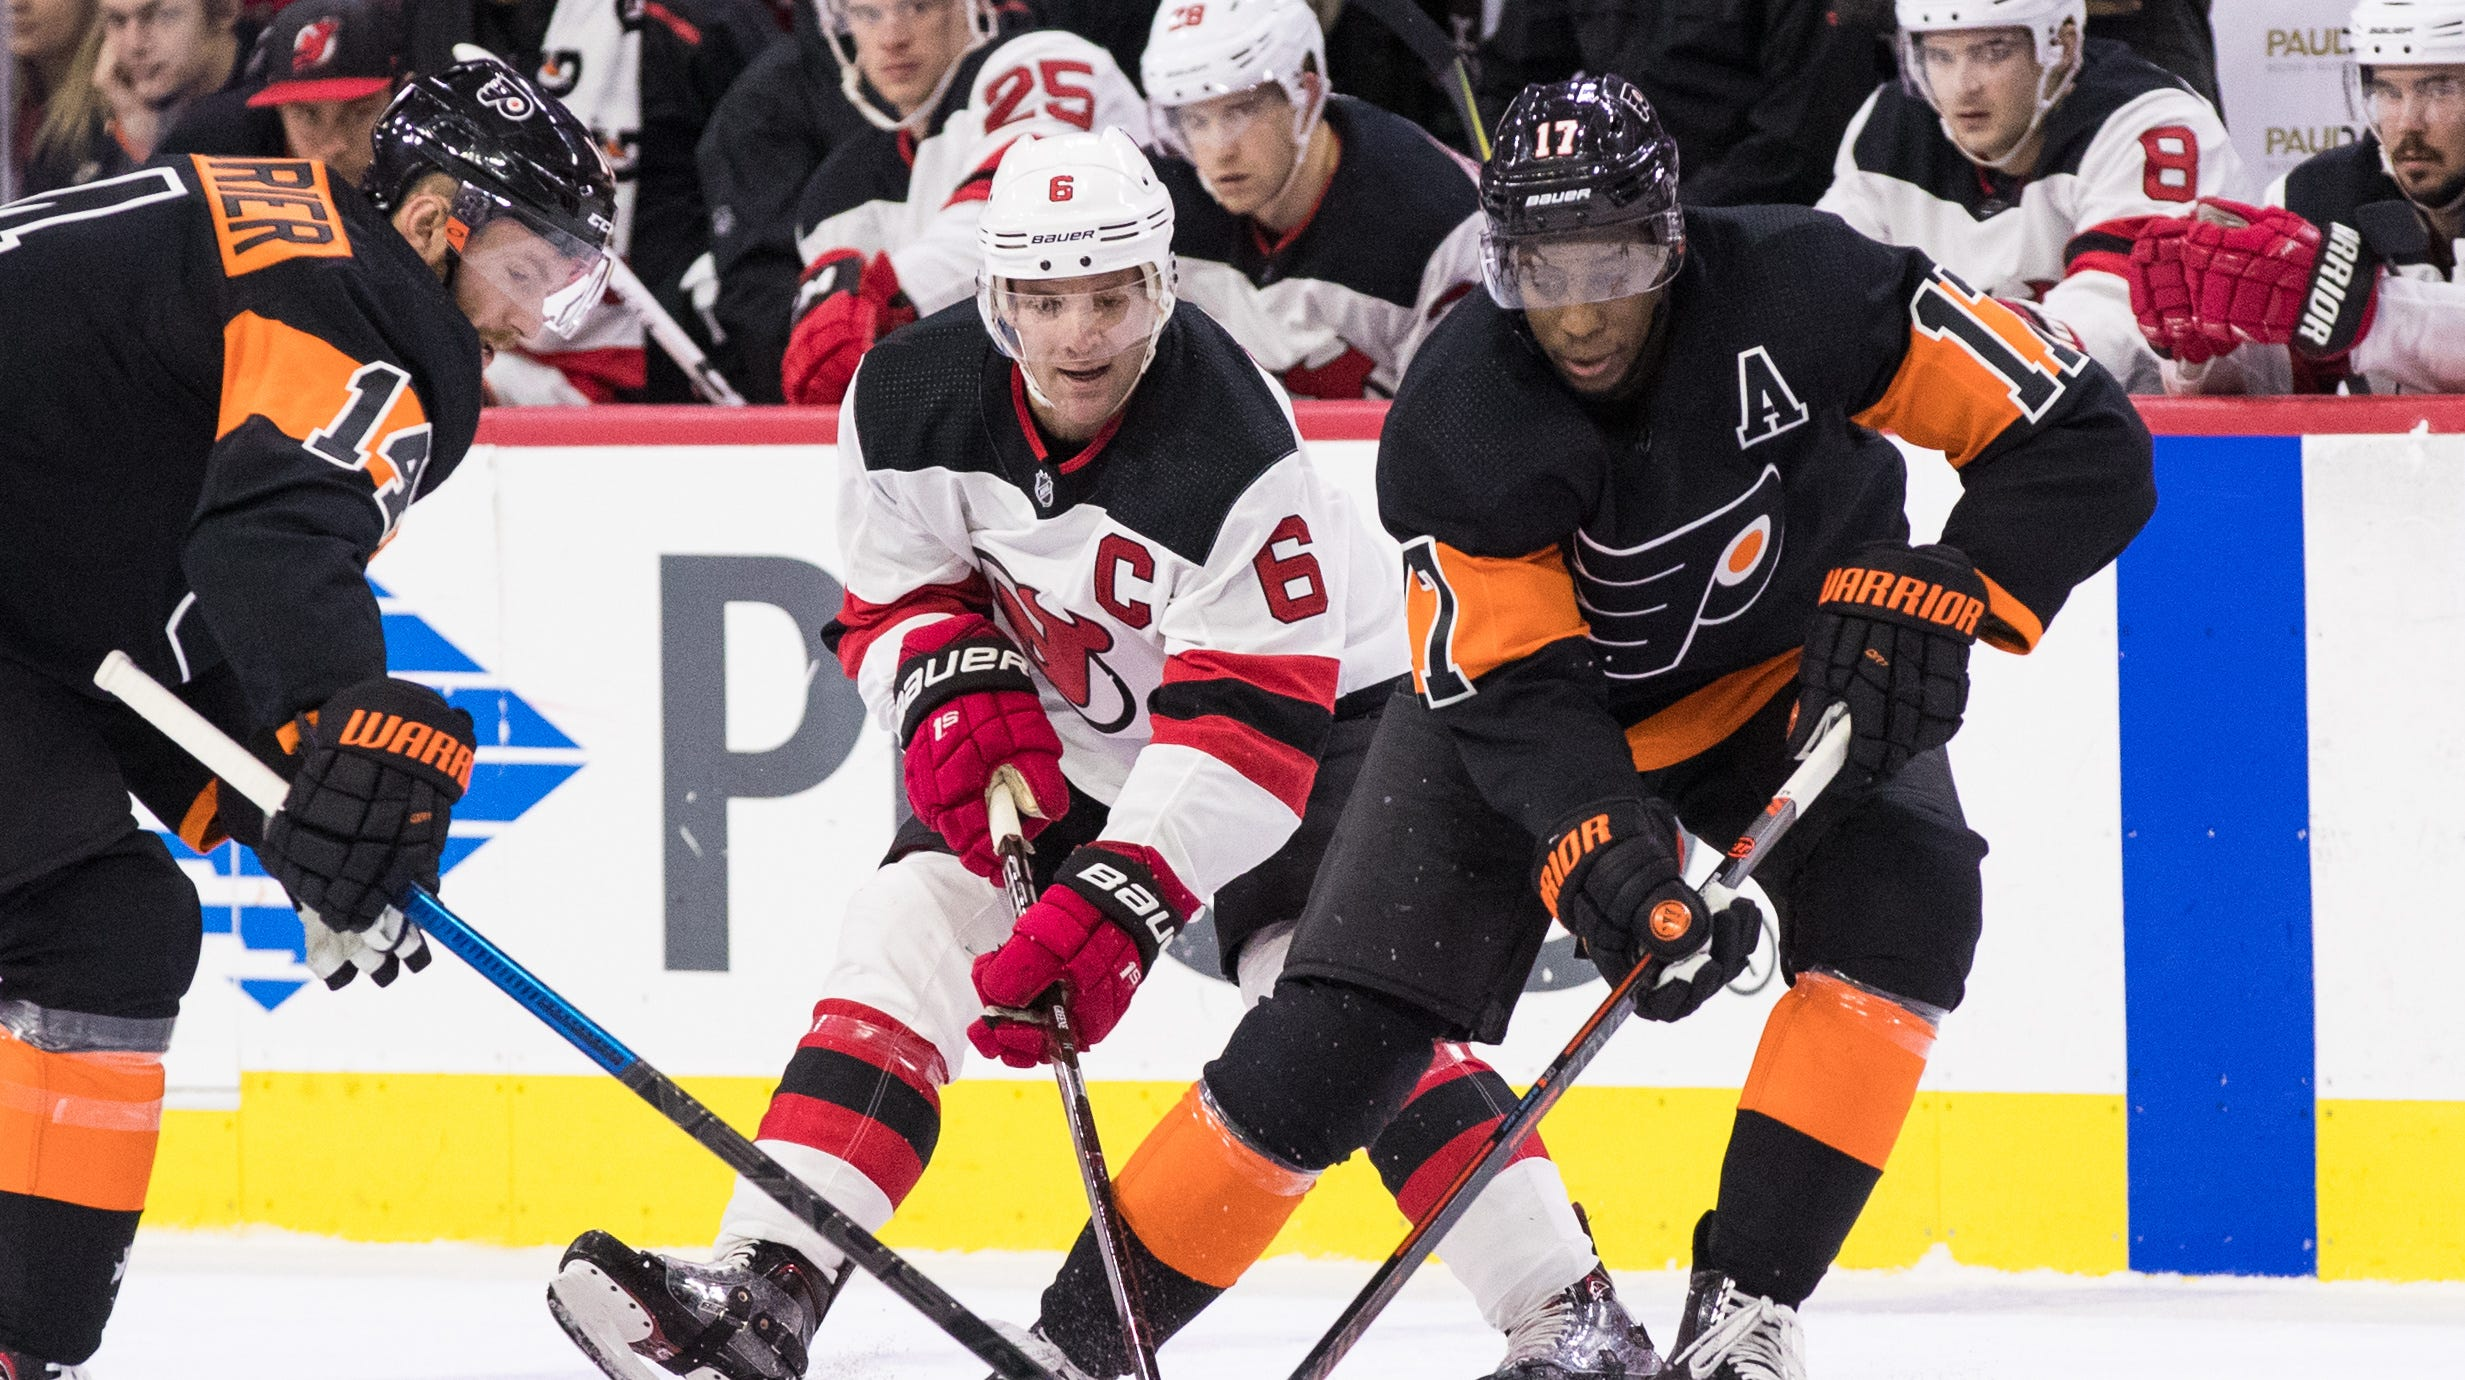 The Flyers beat the Devils once on home ice earlier this season, a 5-2 victory on Oct. 20.